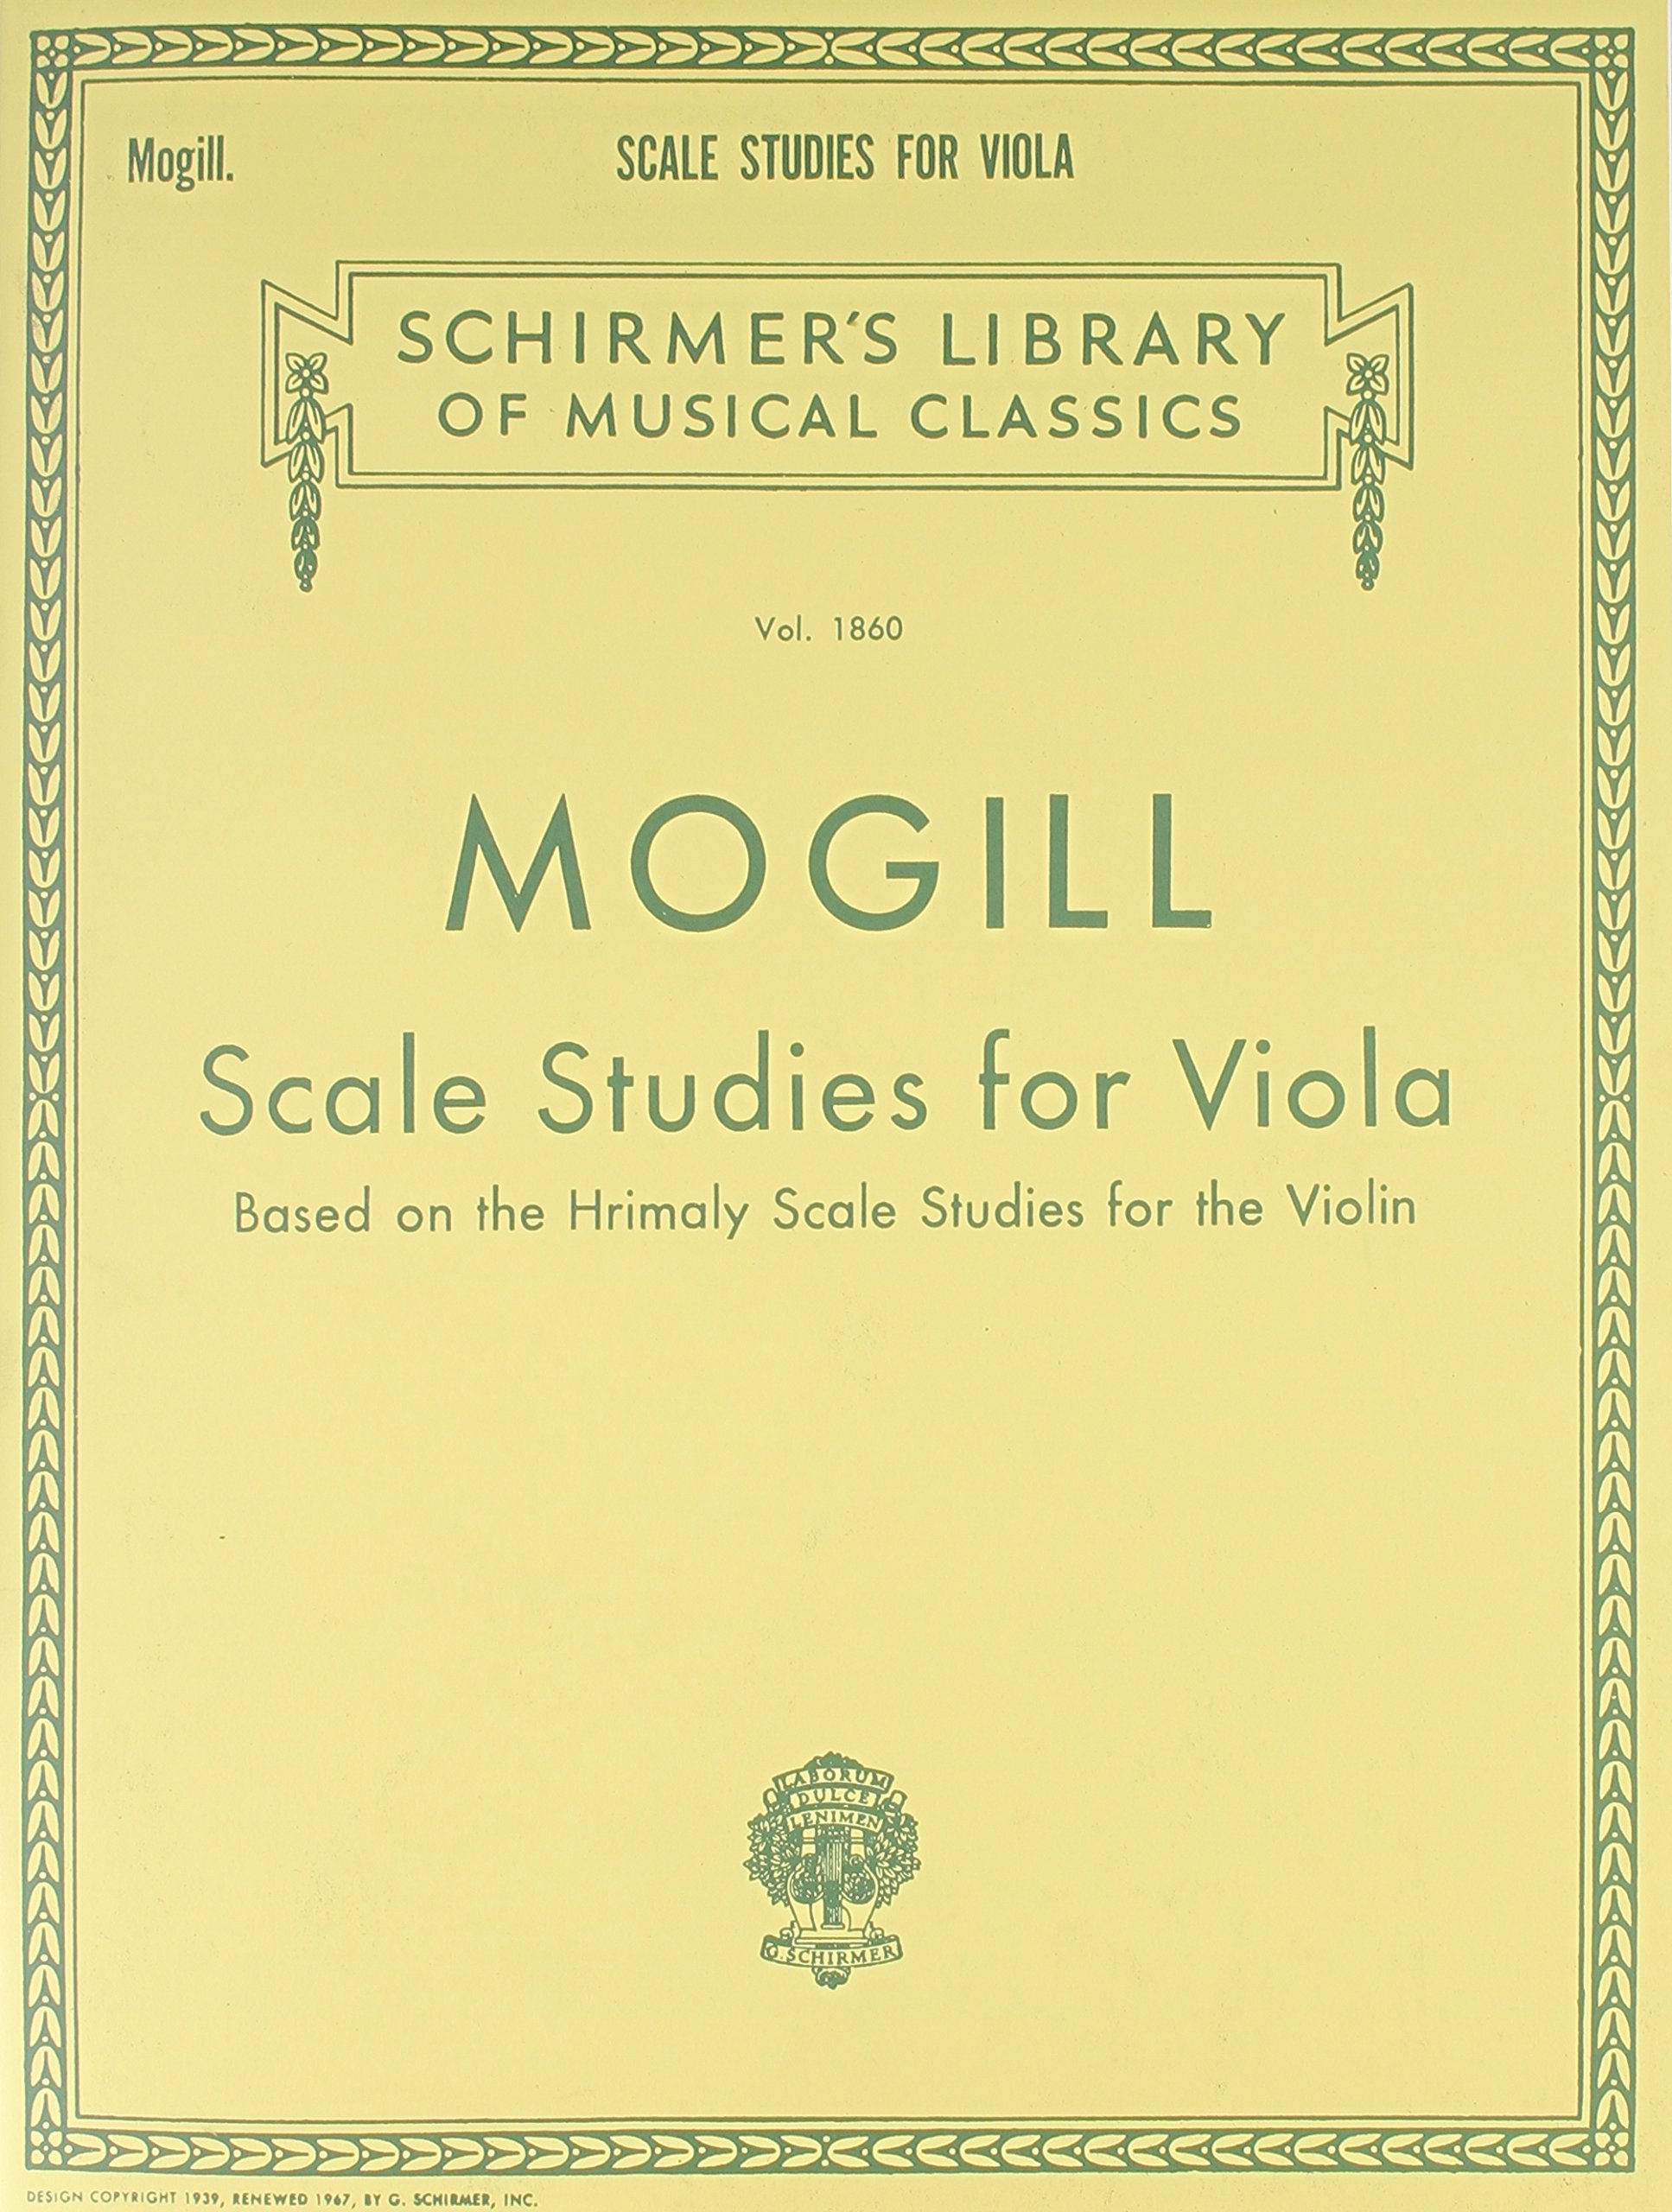 Scale Studies for Viola: Based on the Hrimaly Scale Studies for the Violin